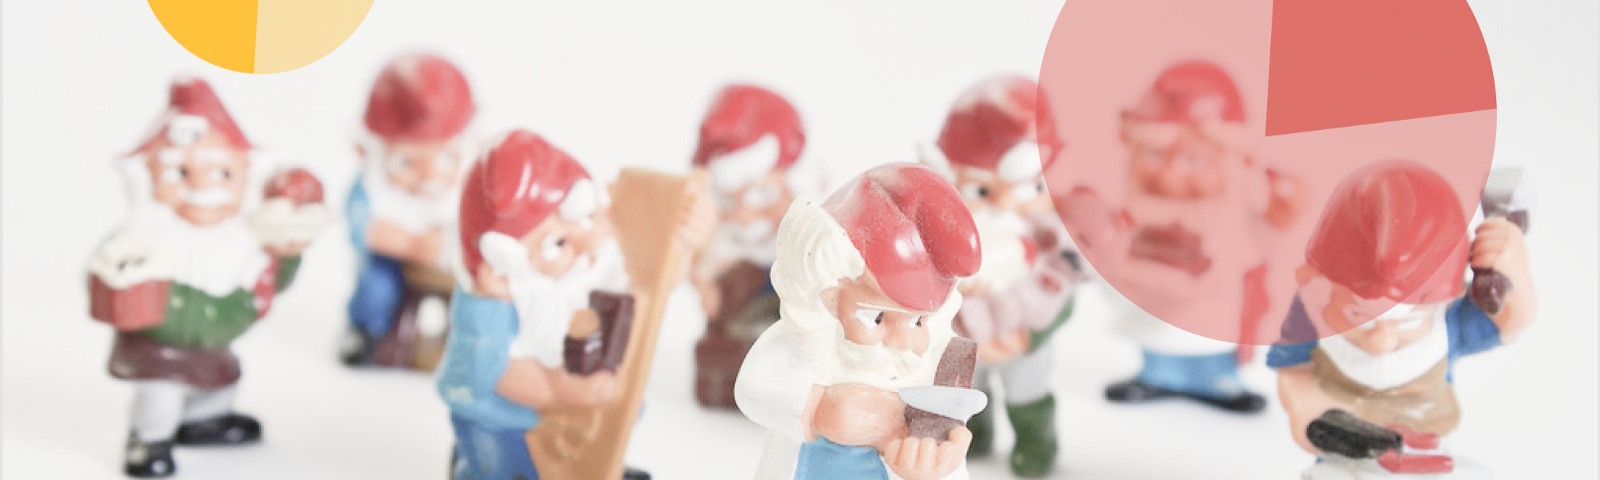 A group of gnomes with different jobs and pie charts overlaying